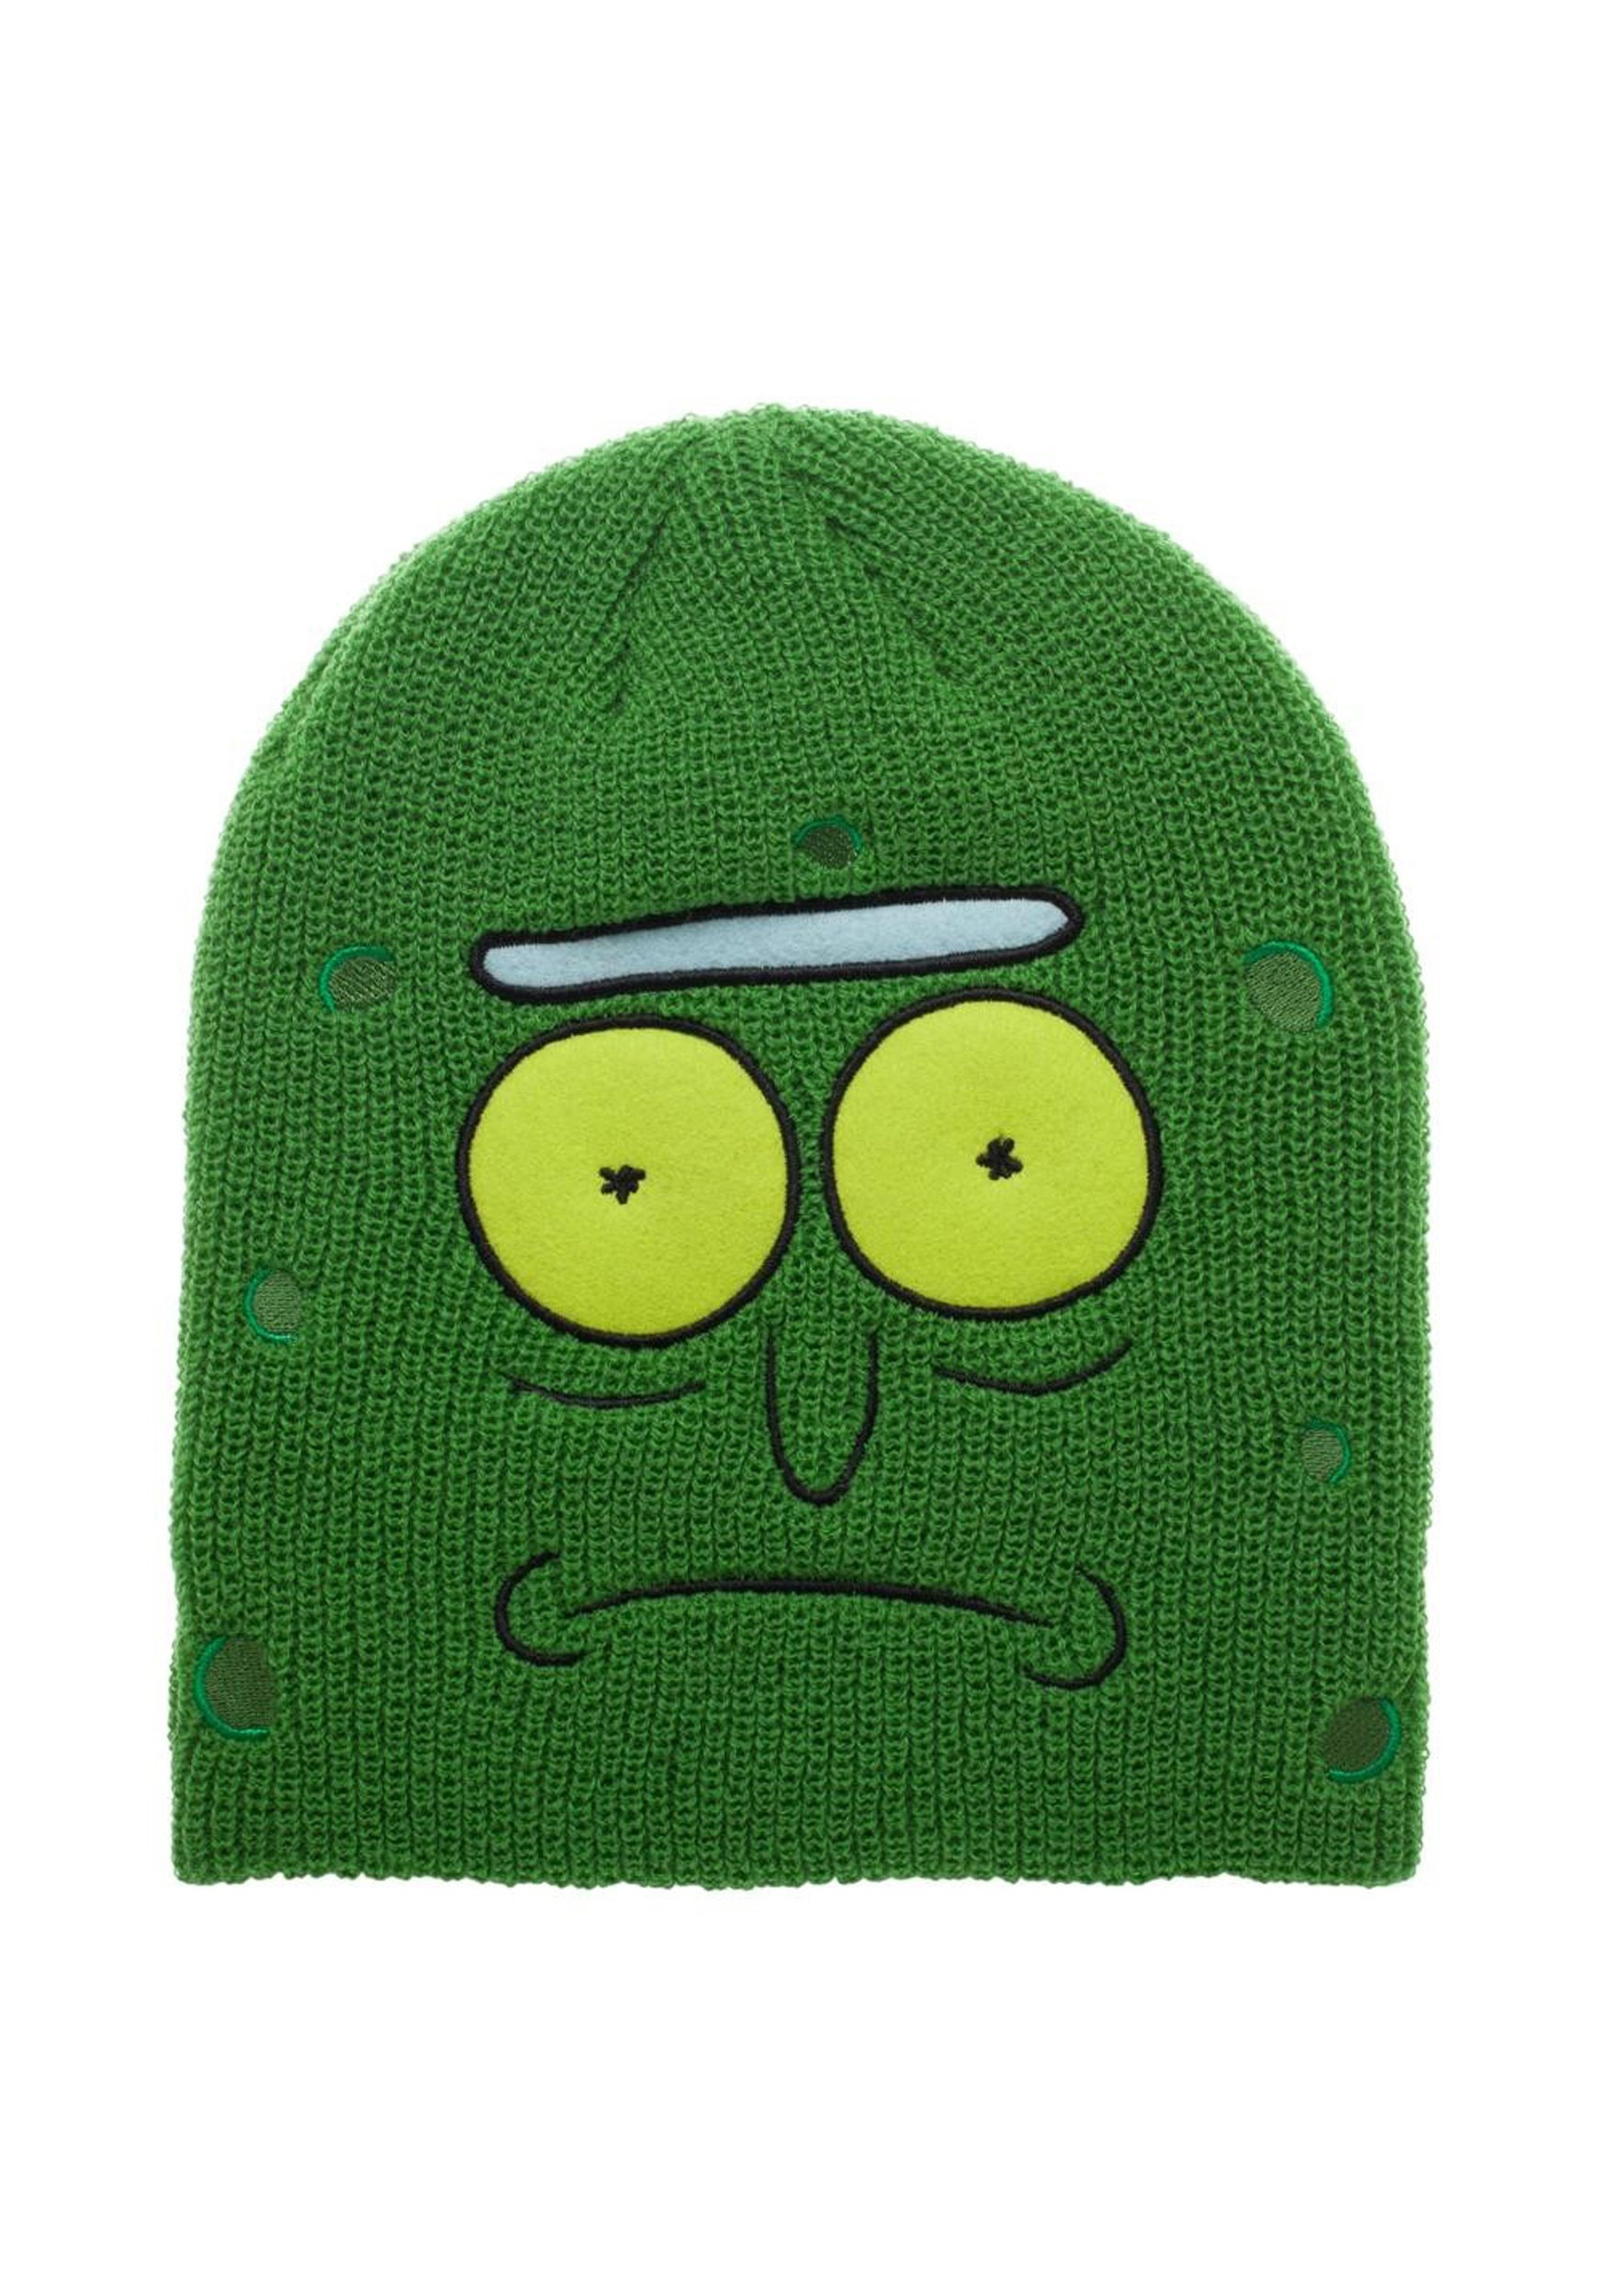 Rick and Morty Pickle Rick Green Slouch Beanie b22f4b6c1e0